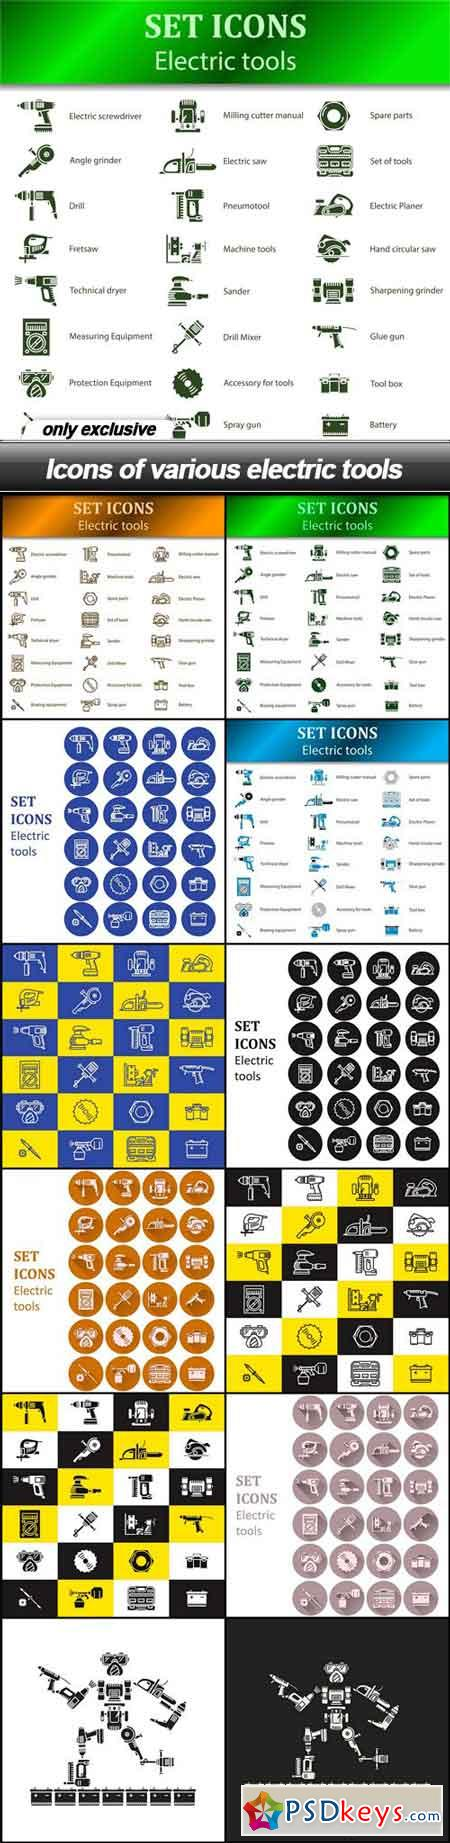 Icons of various electric tools - 12 EPS